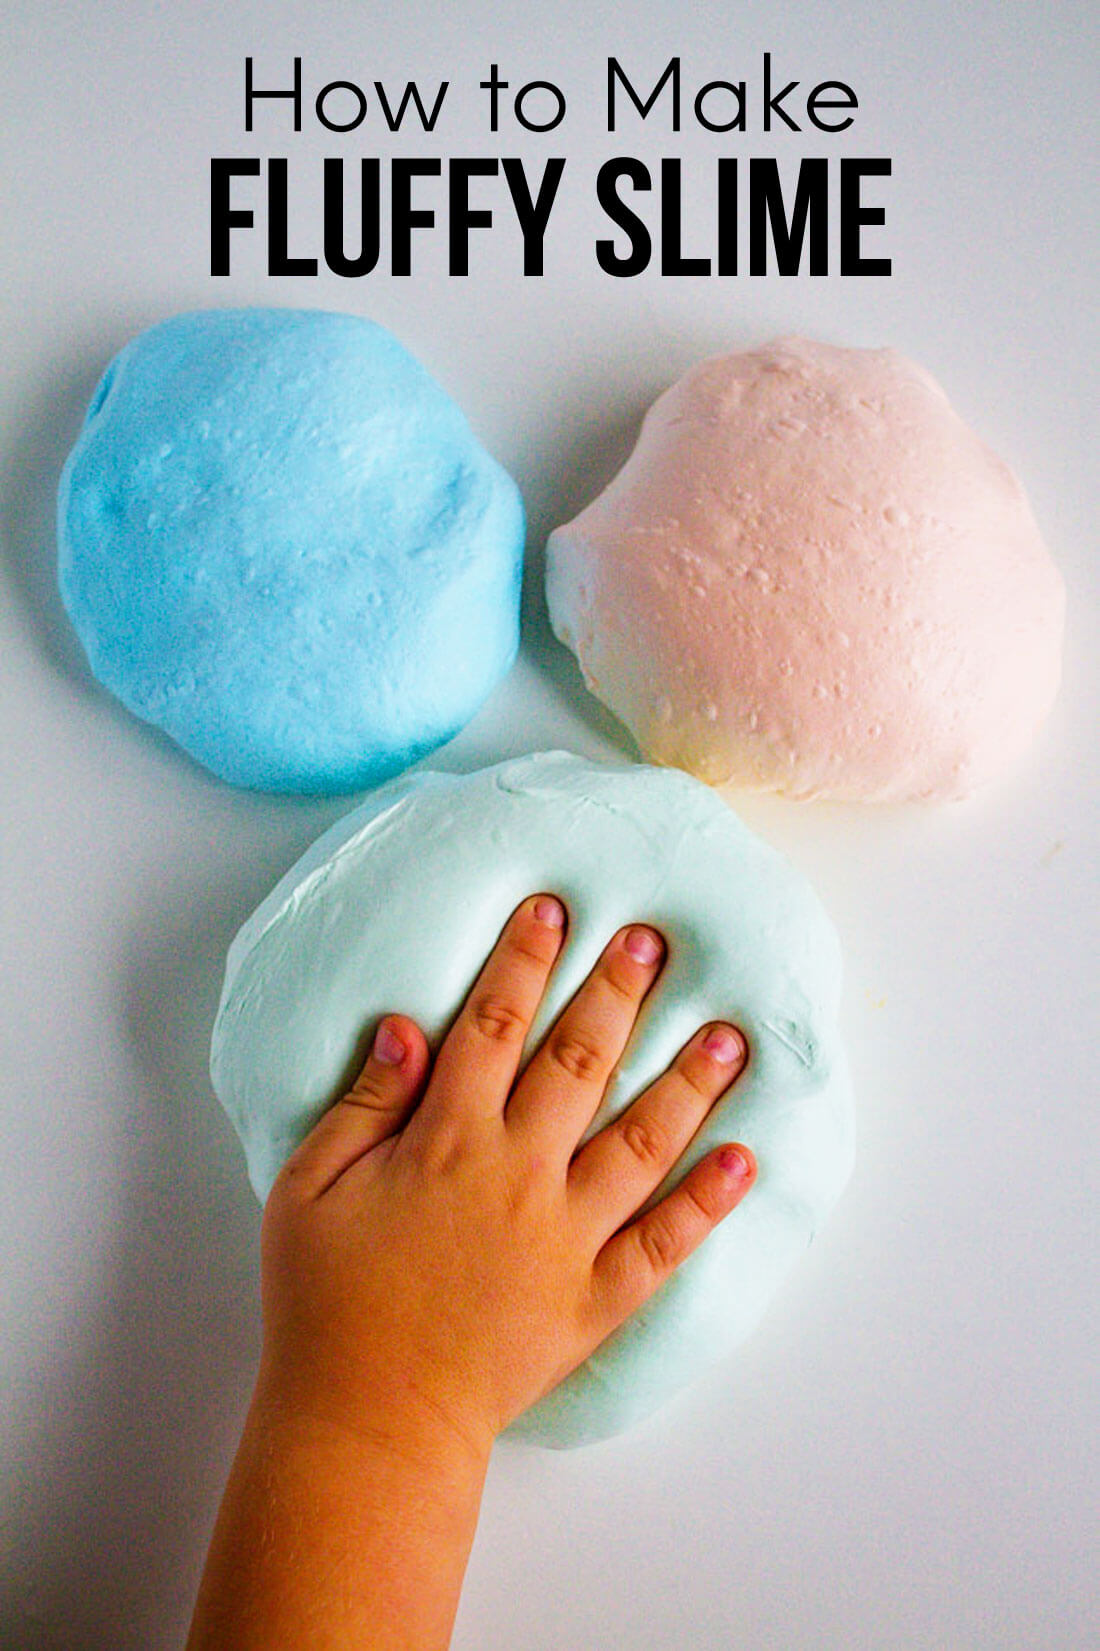 How to make fluffy slime - step by step easy instructions to make the best slime.